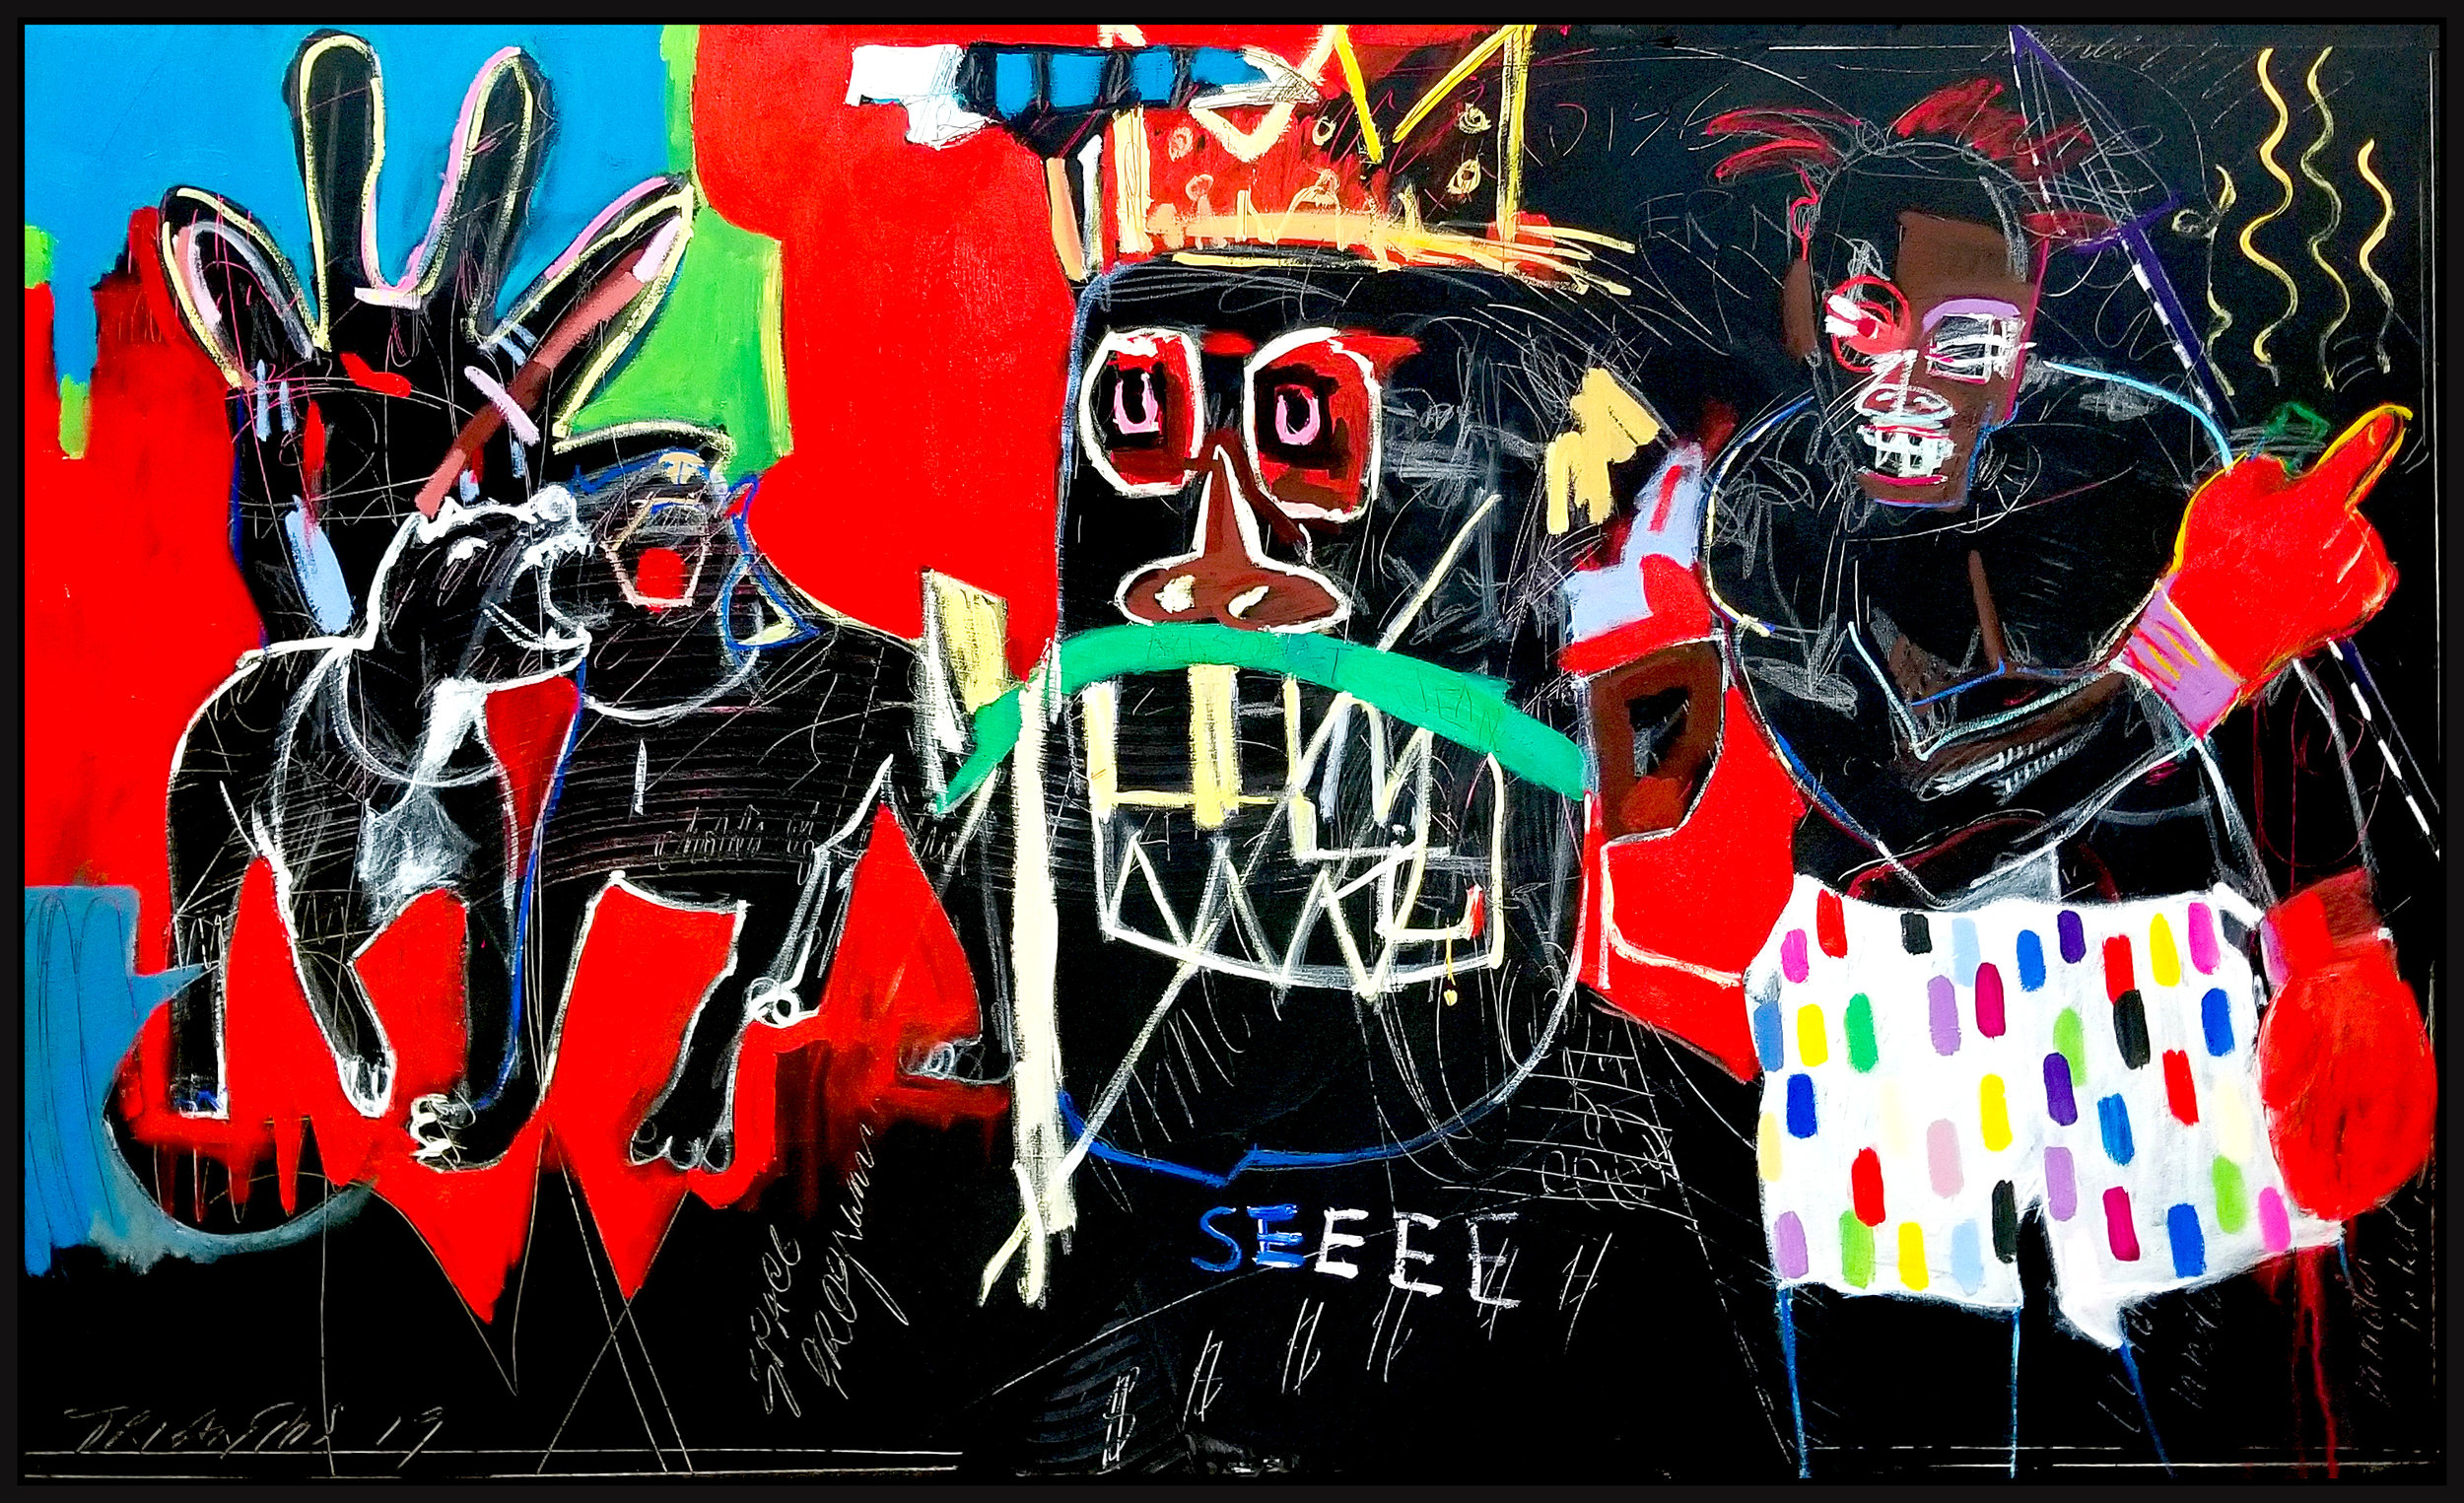 "Homage Basquiat (Untitled #128) , 2019, acrylic on canvas, 36"" x 60"" (91.4 x 152 cm) in Seoul, Korea"